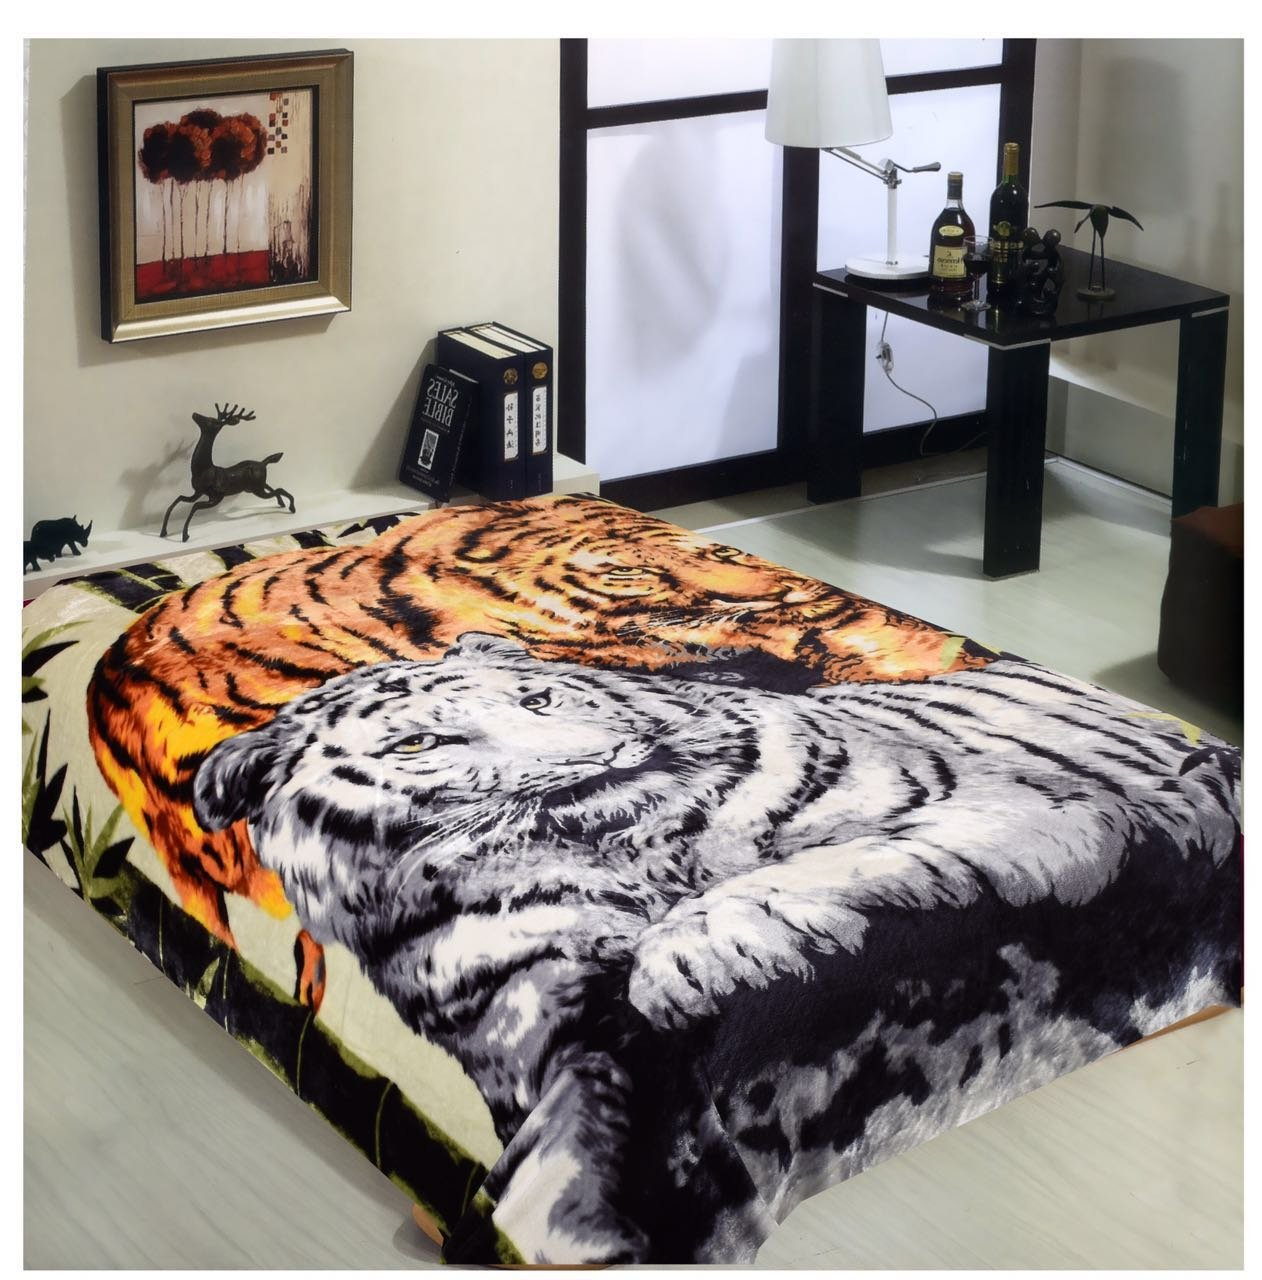 Wild Animal Brown Tiger Print Blanket , TV, Cabin, Couch,Plush,Warm, Bedcover Throw , Full Queen, 75''Wx90''H , Silky Mink Cozy, For Girls,Boys, Kids,Men,Women